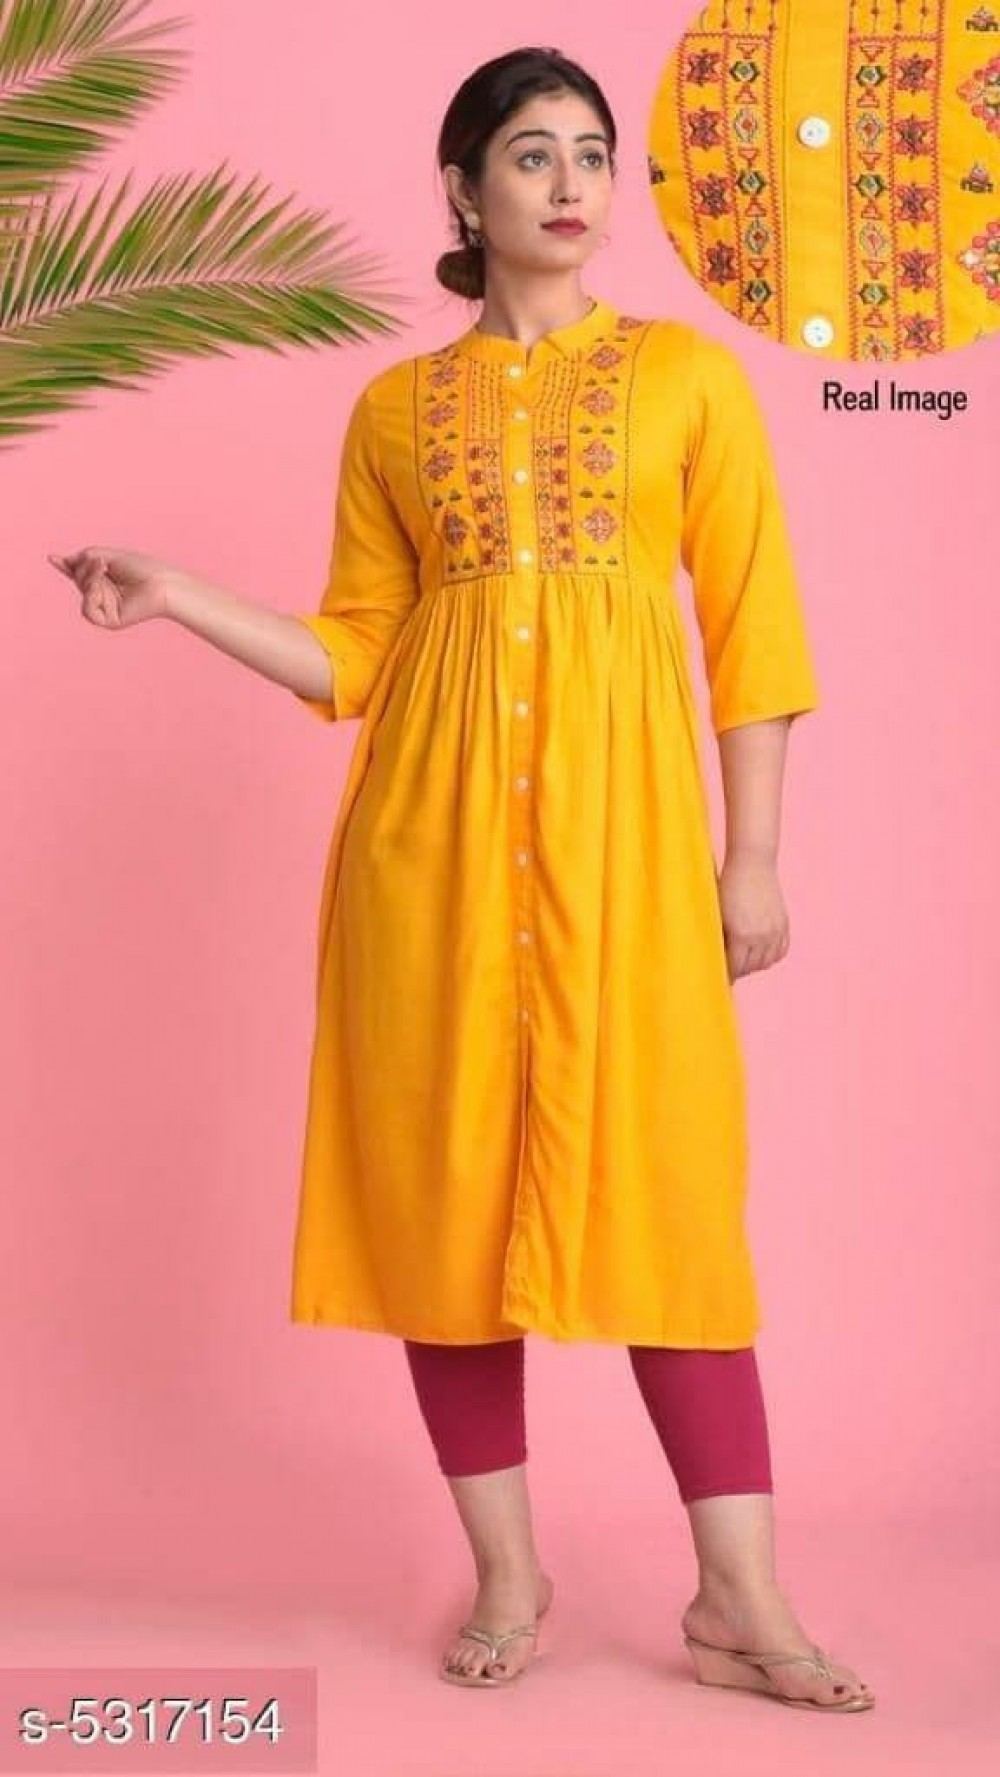 Trendy Embroidery Yellow Rayon Kurti online available